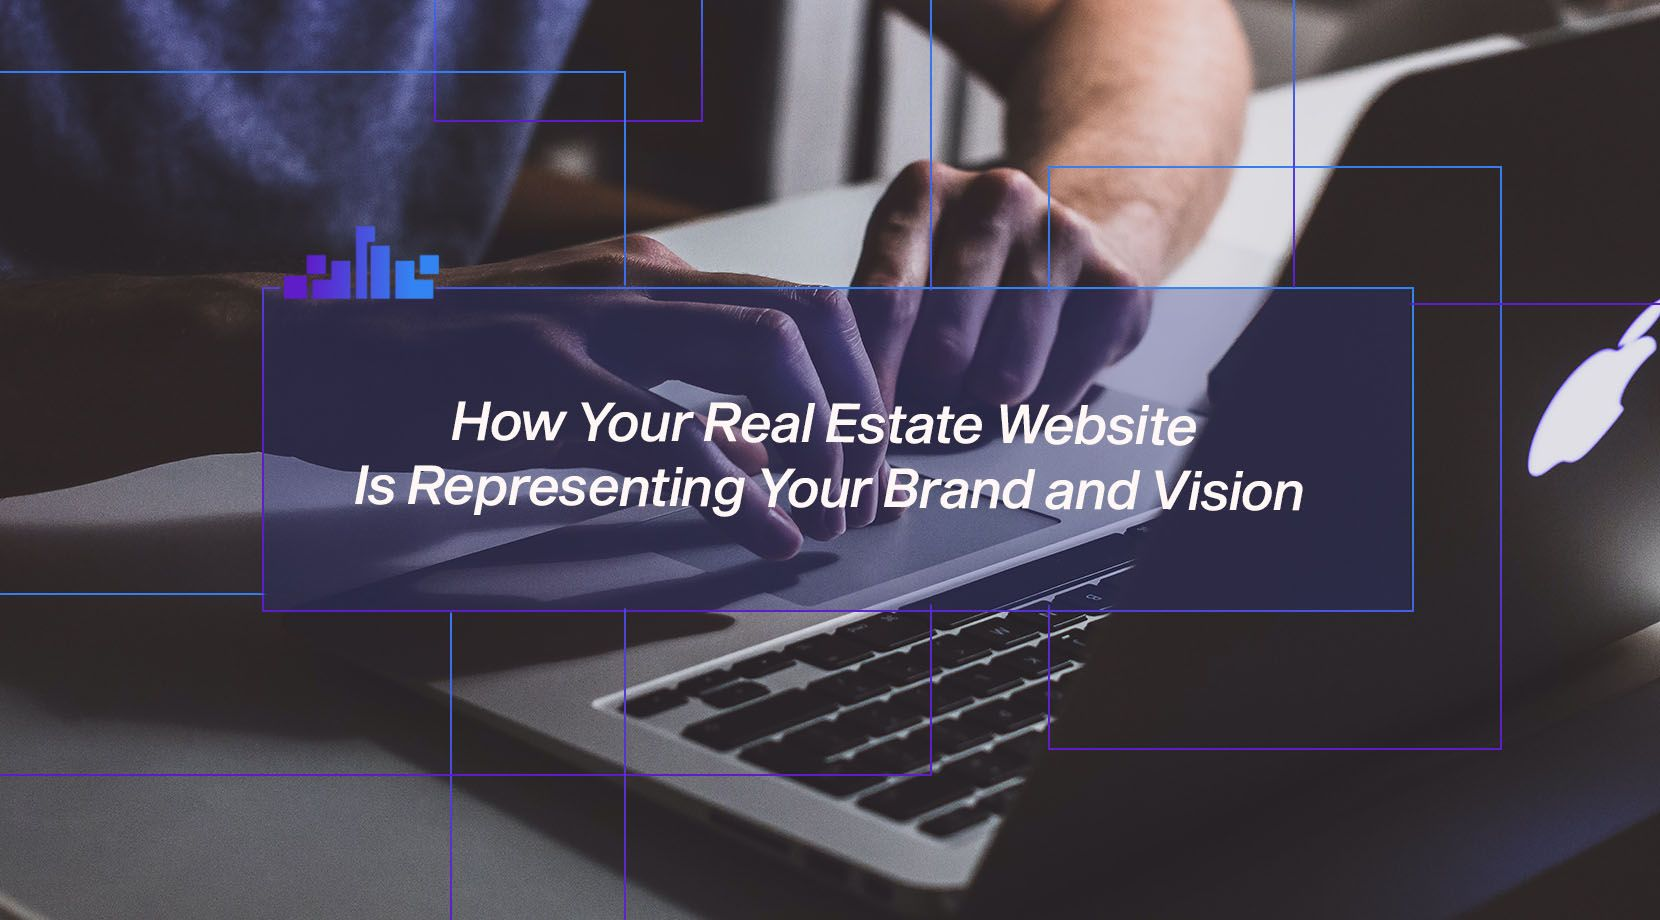 How Your Real Estate Website Is Representing Your Brand and Vision?